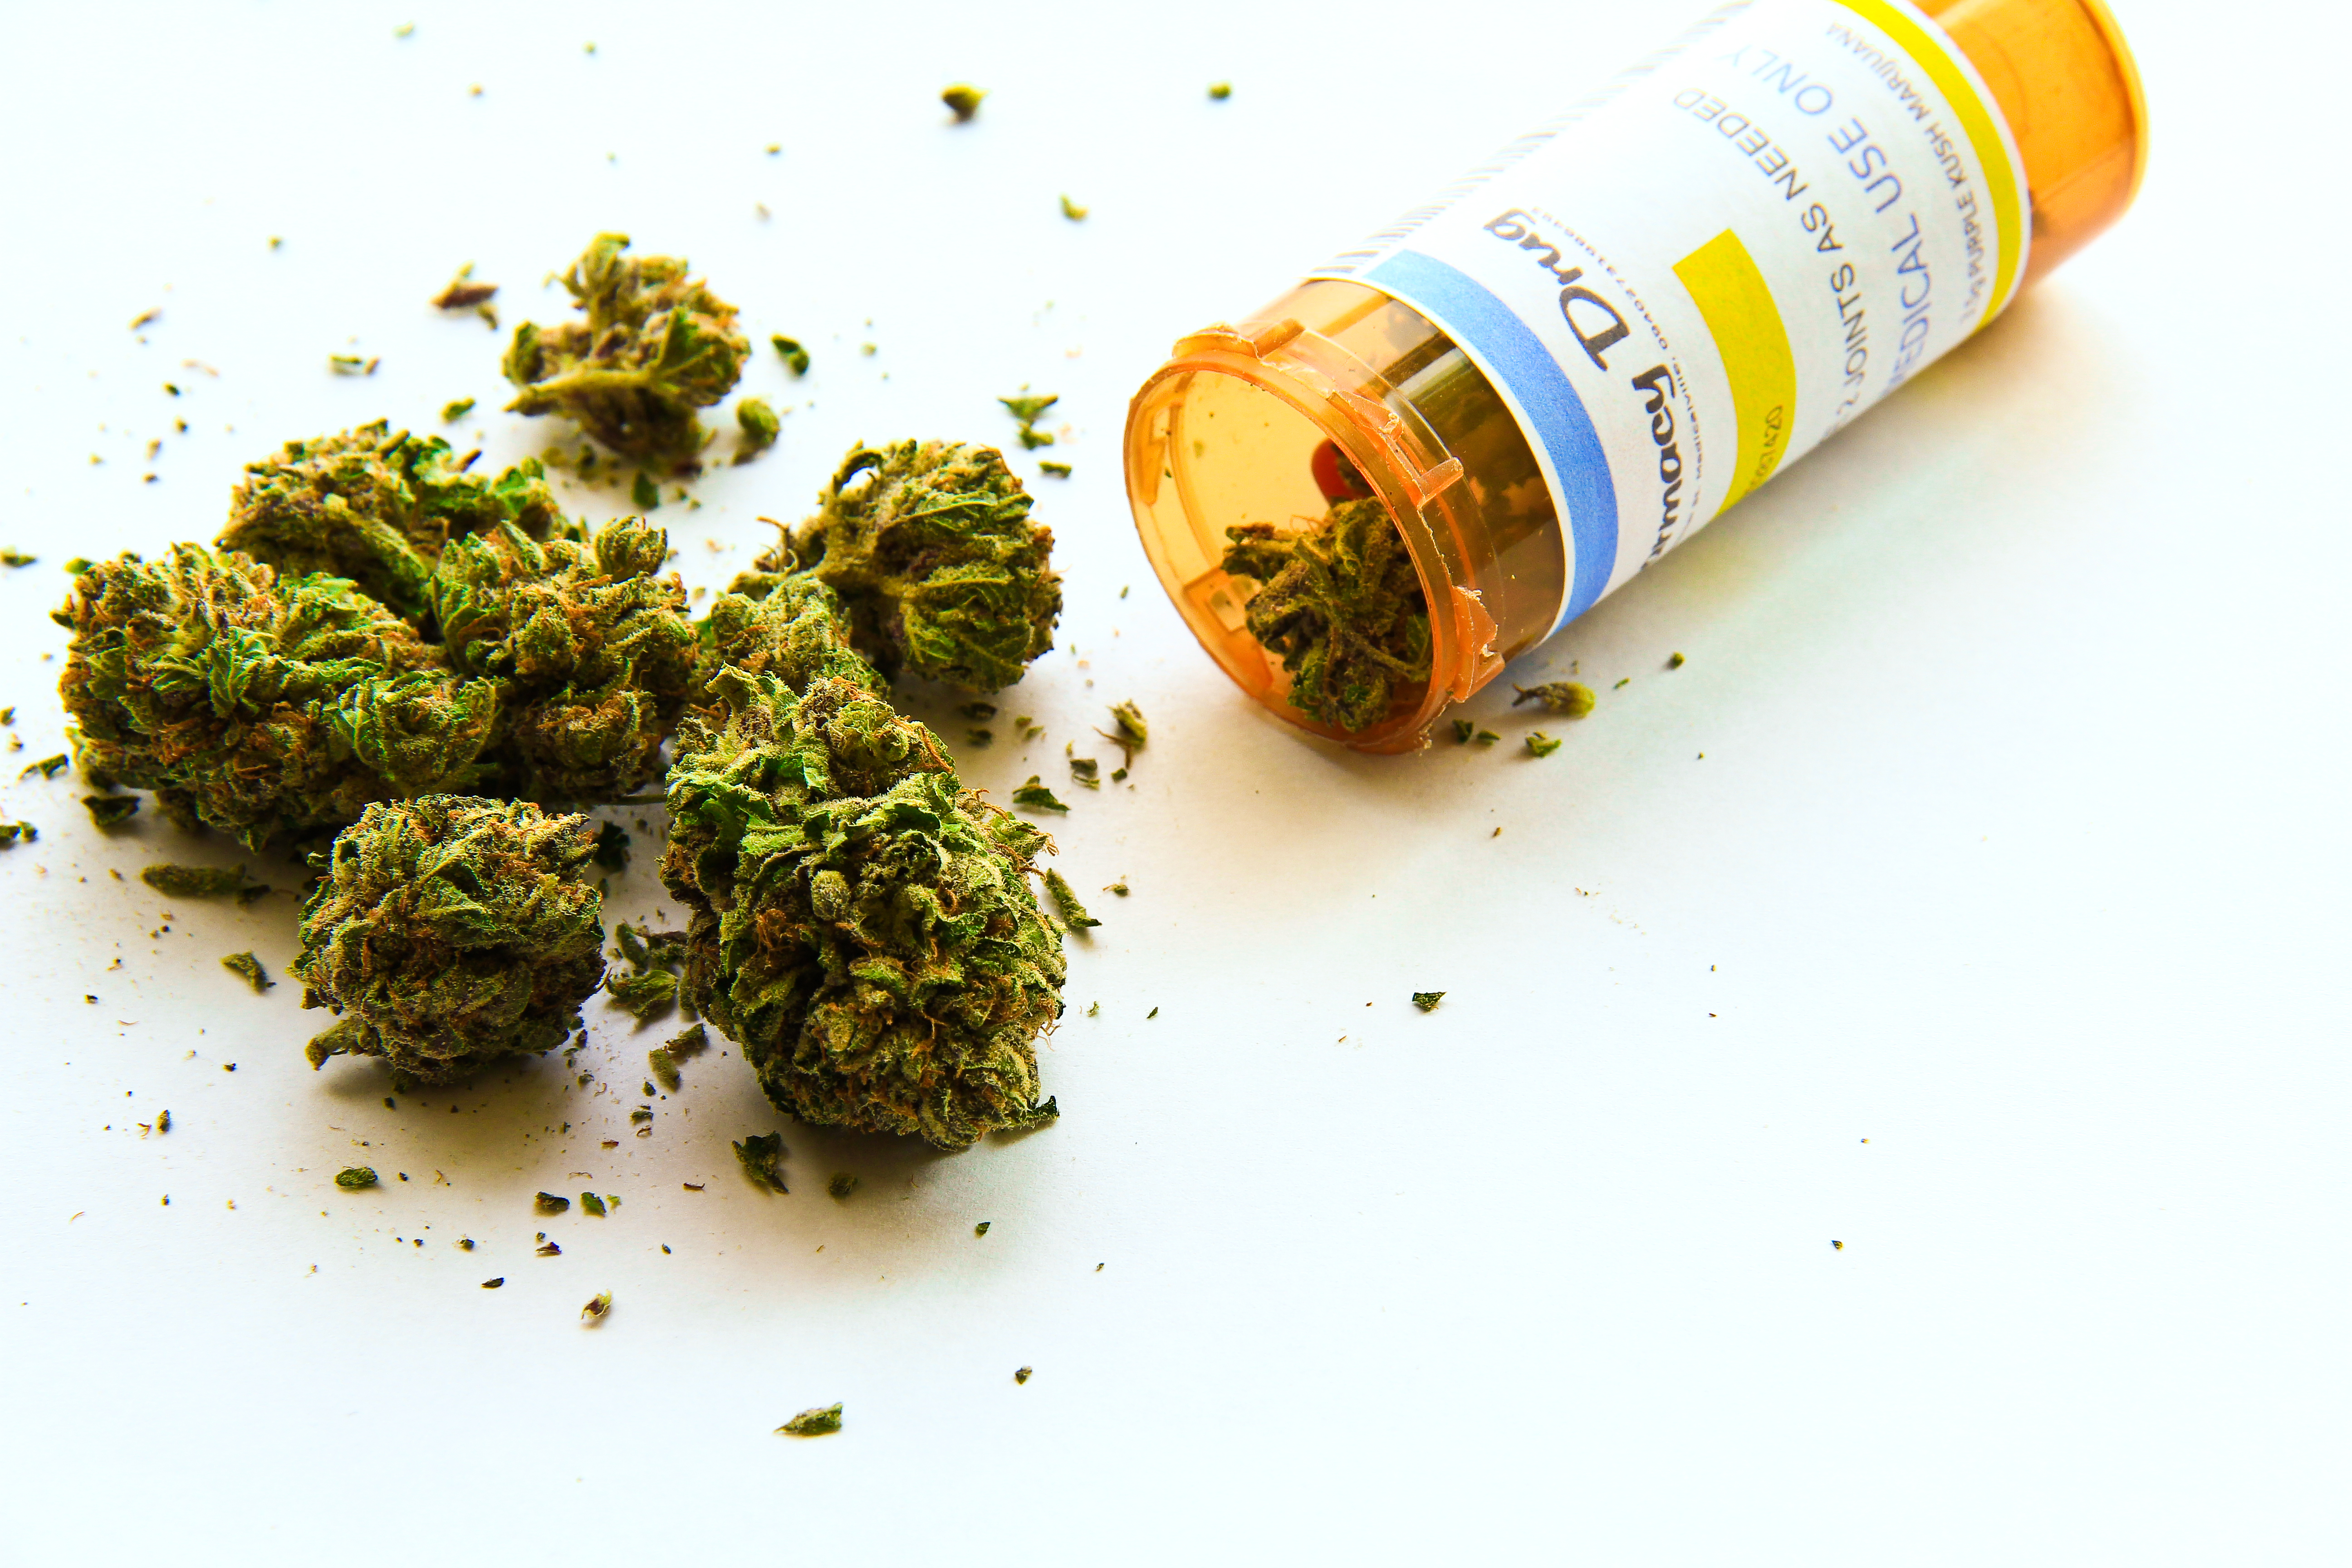 Choosing Cannabis for Pain Relief